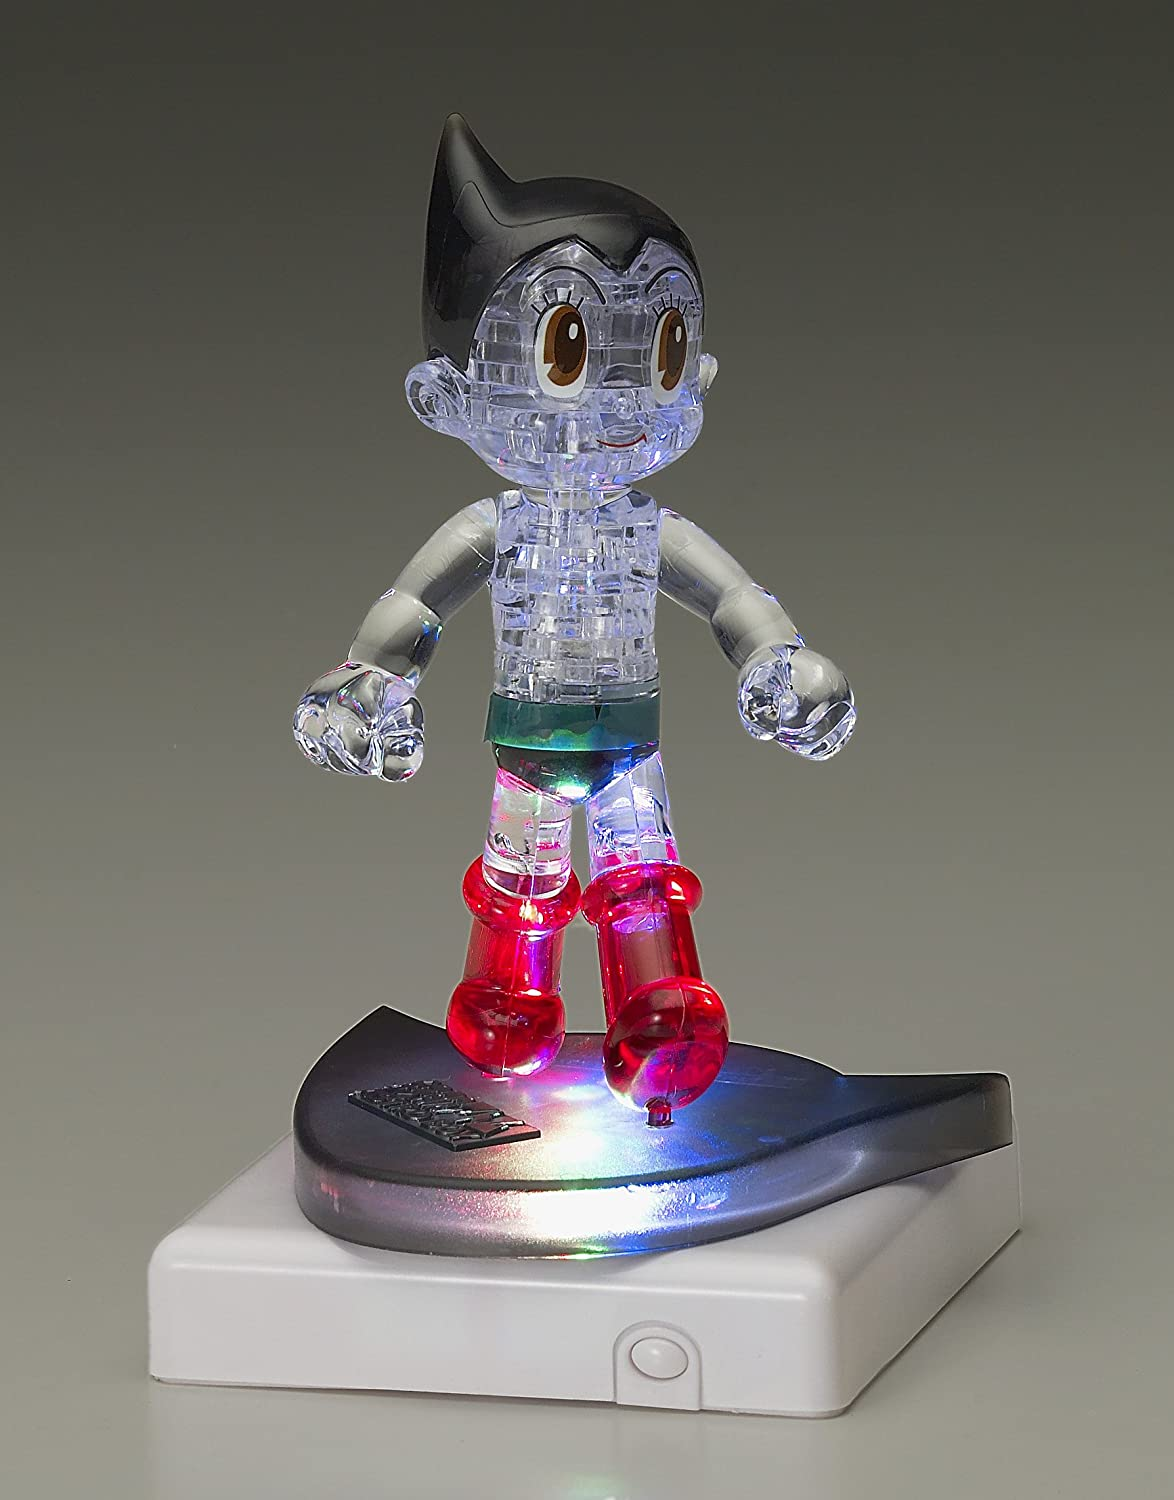 Beverly 3D Crystal Puzzle Astro Boy 40 Pieces from Japan